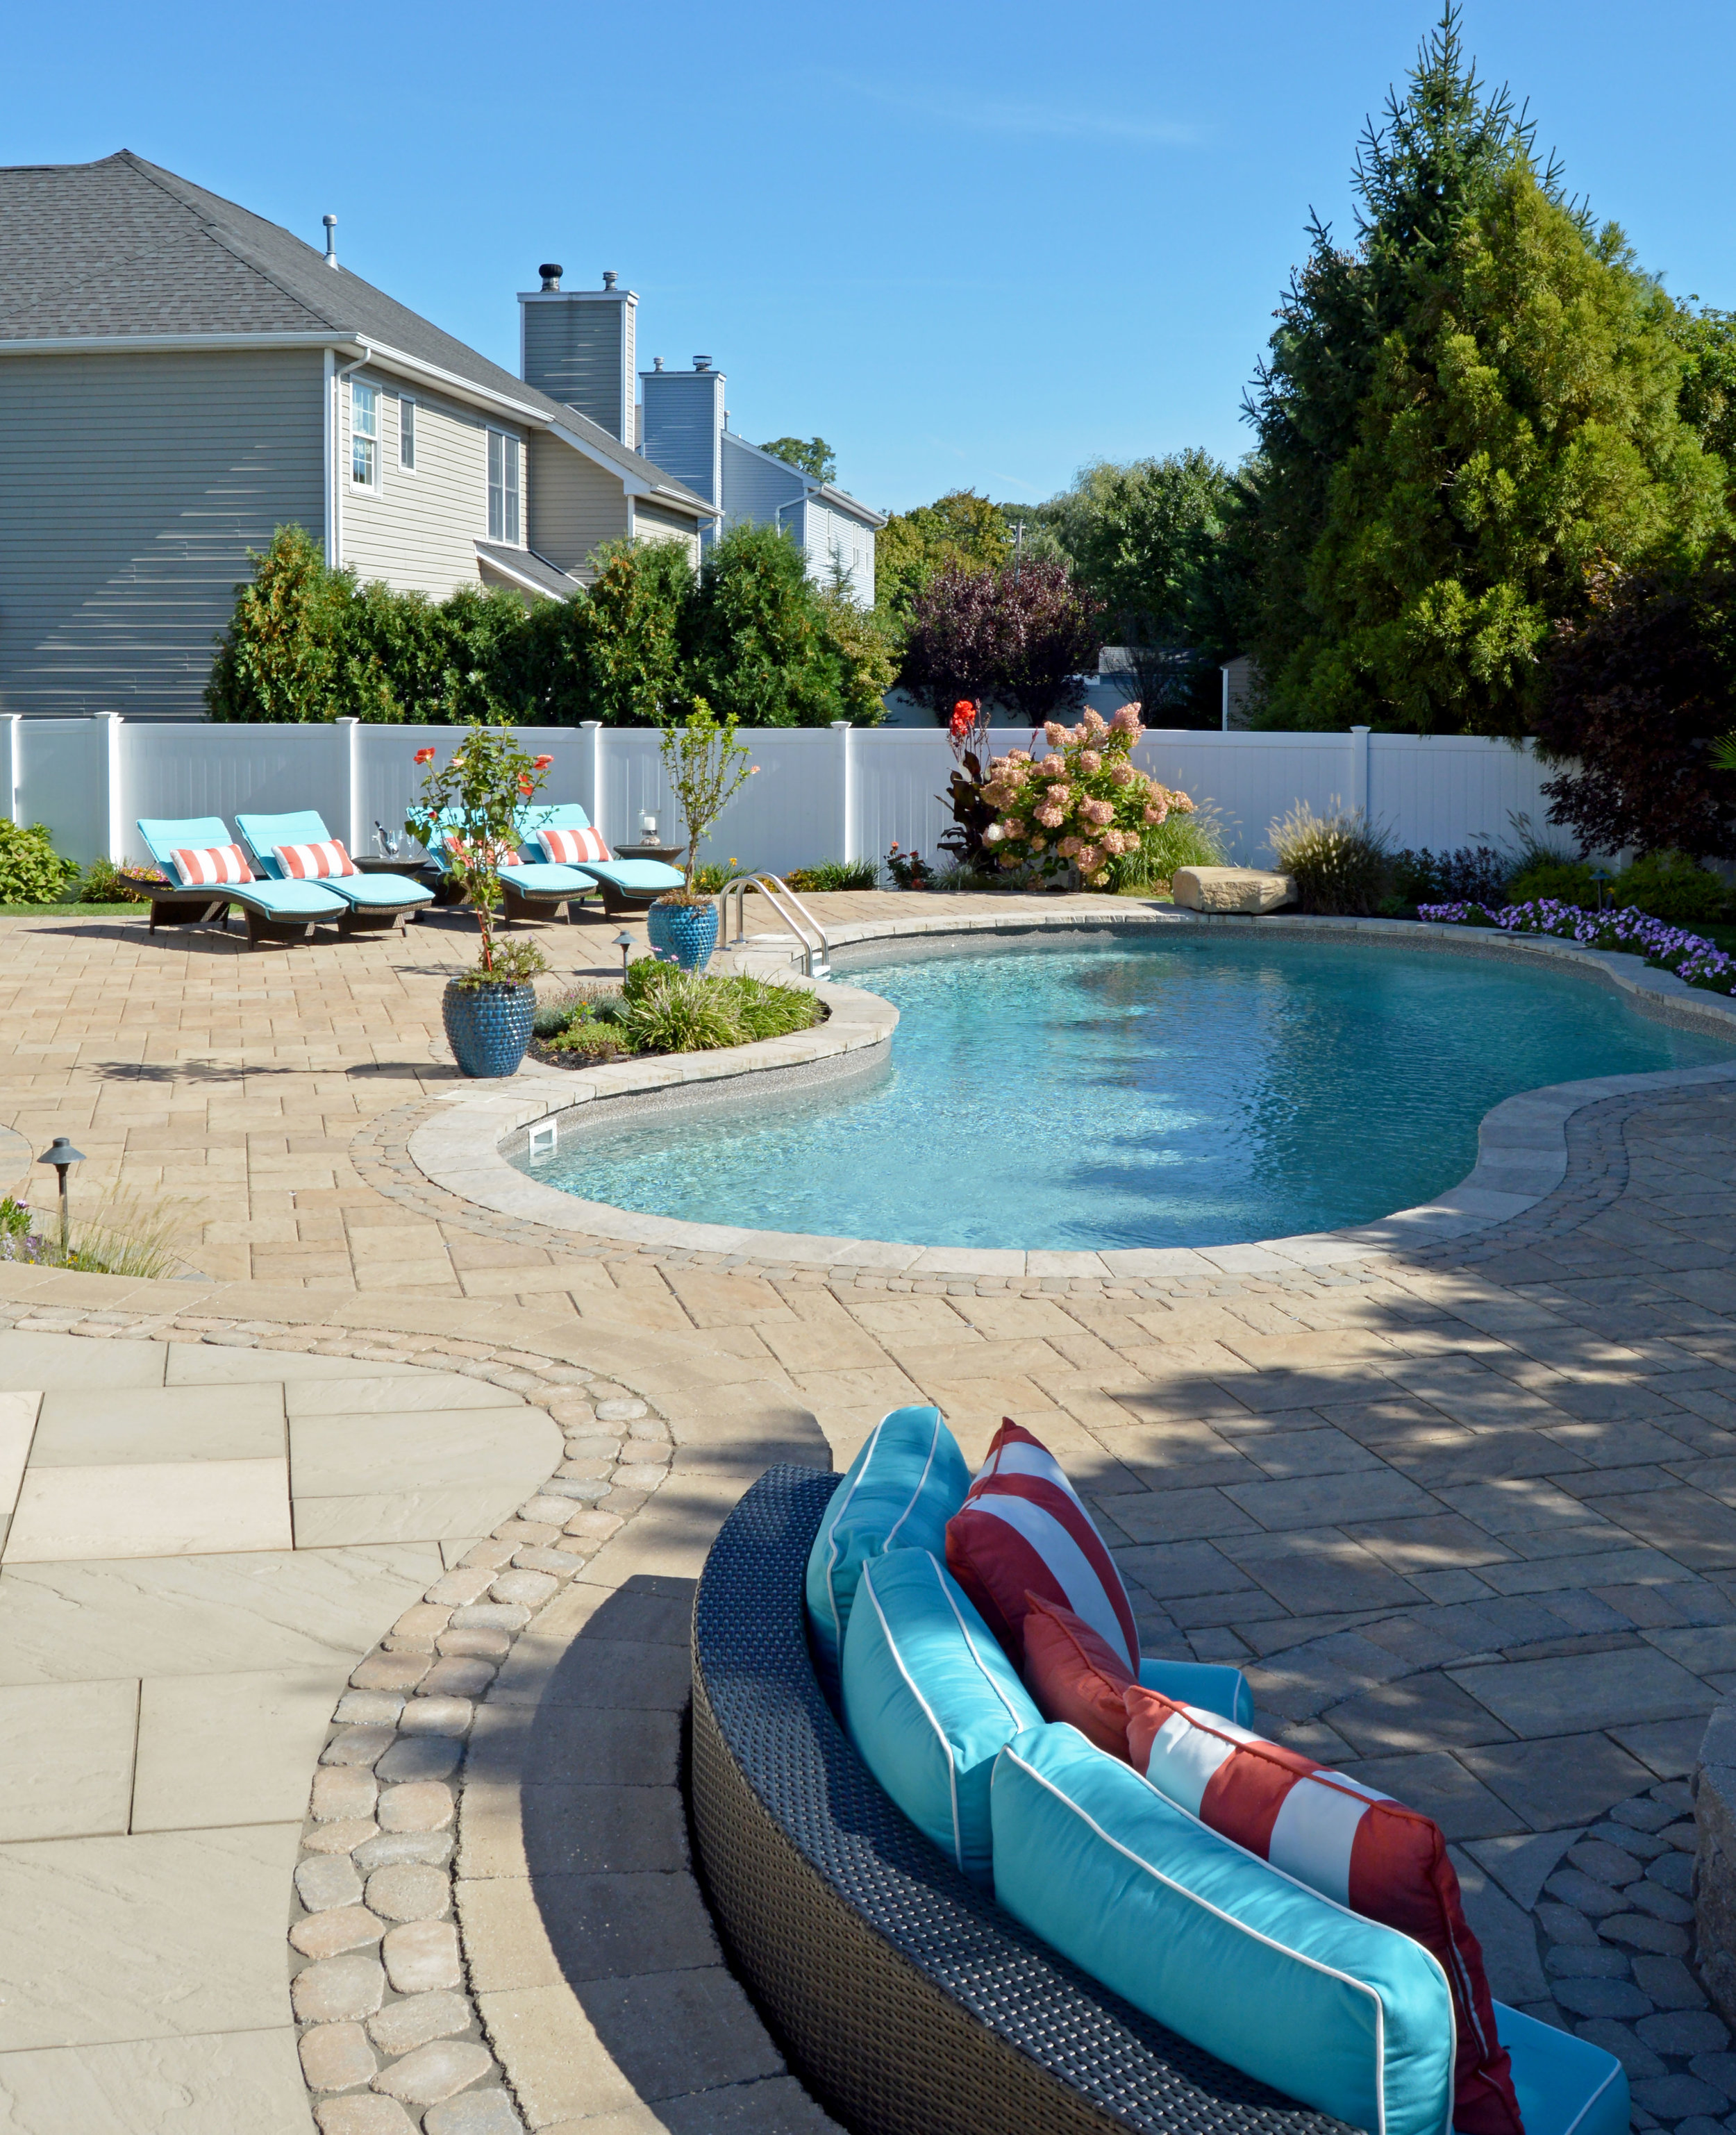 Smithtown, NY swimming pool patio